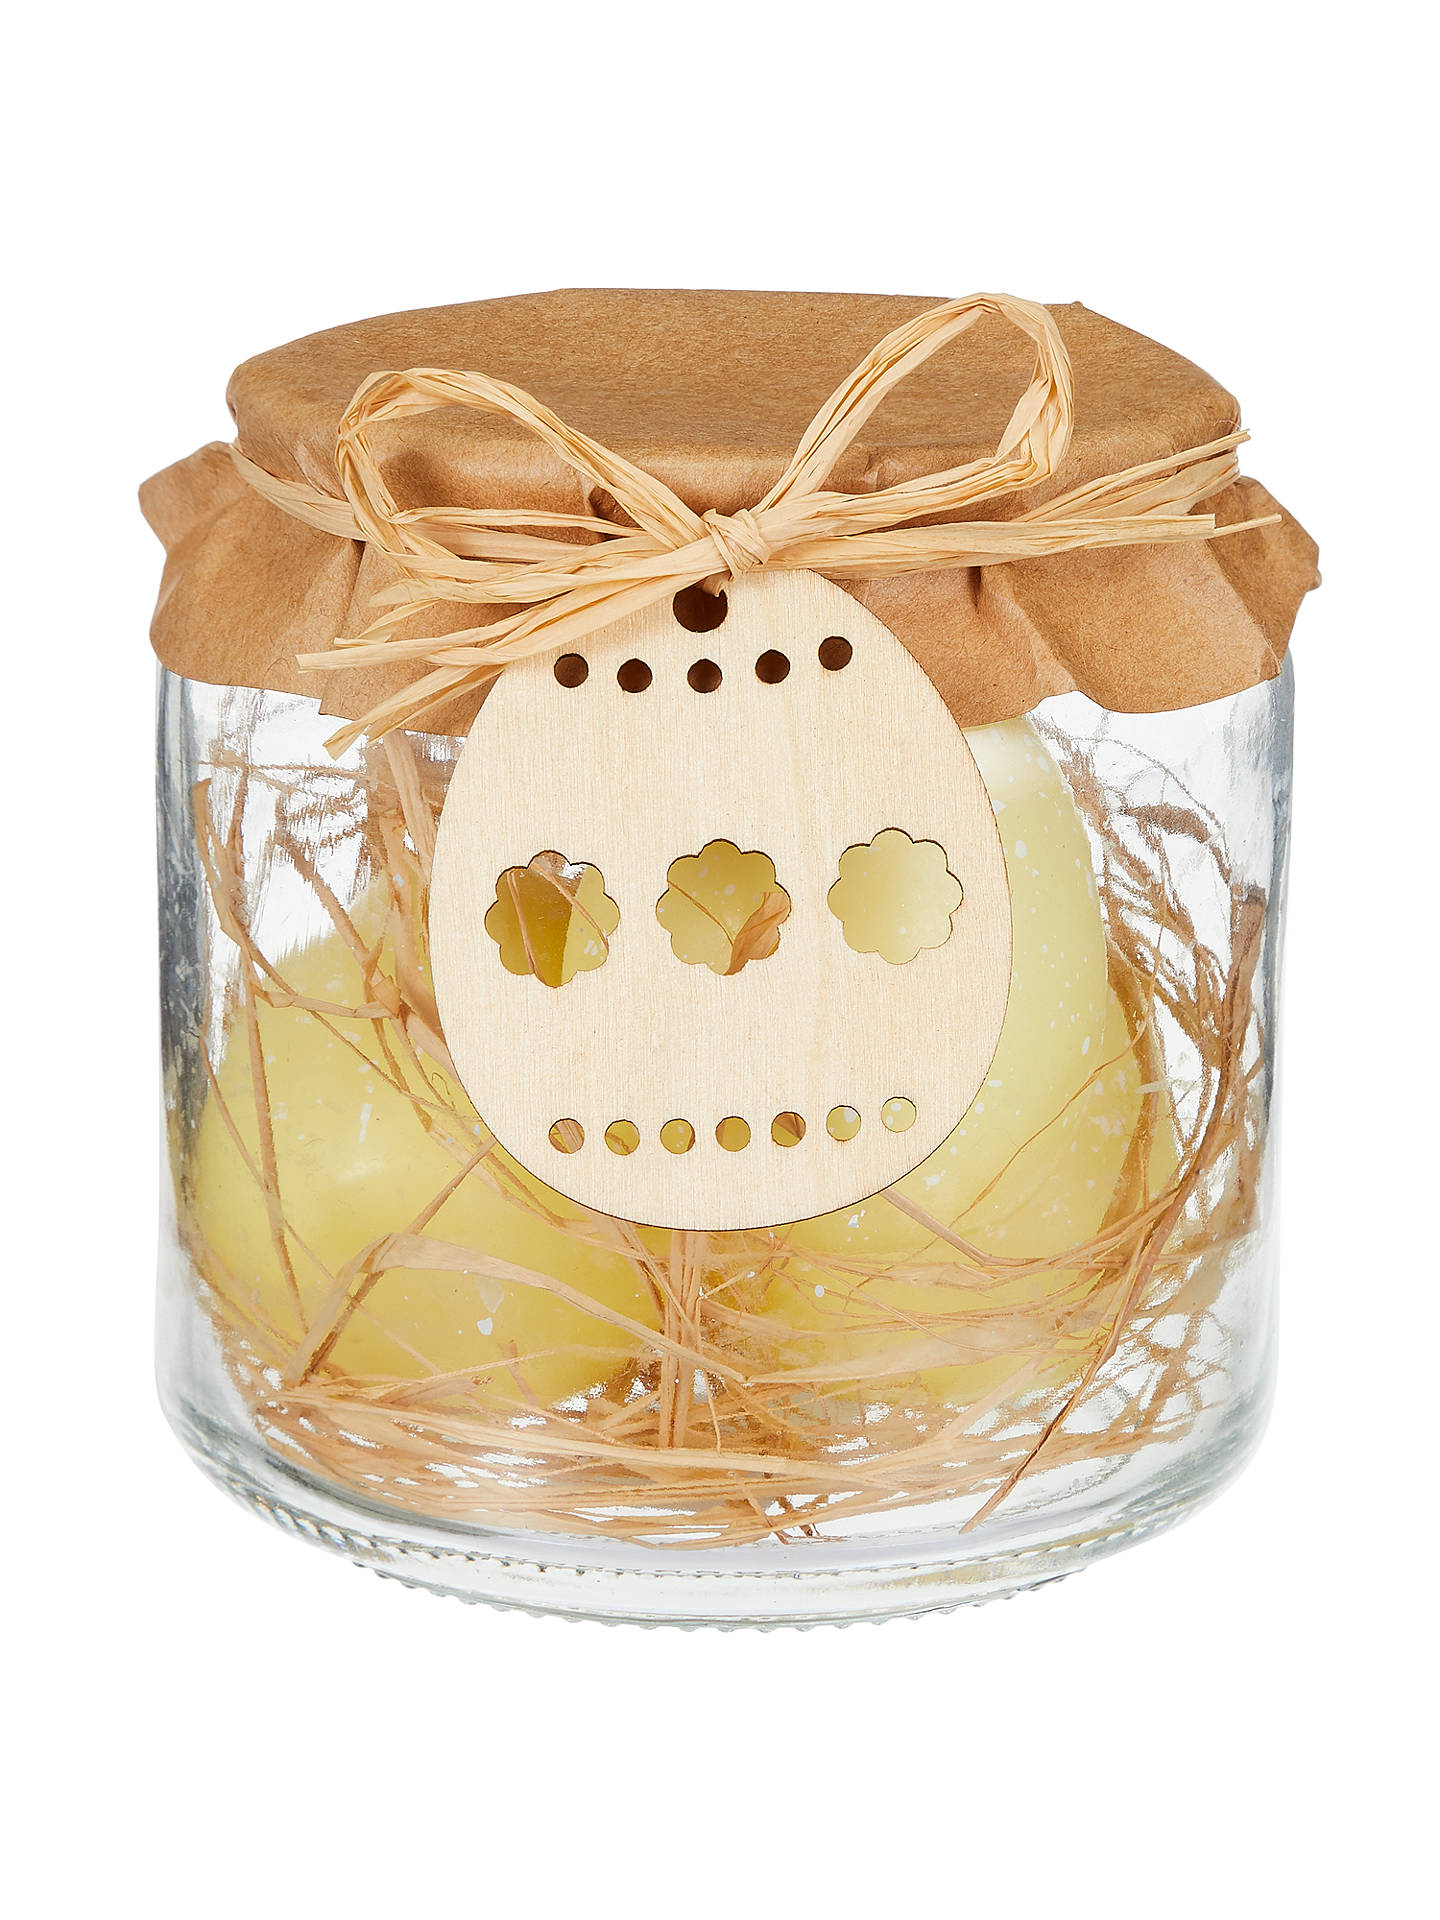 BuyJohn Lewis Mini Egg Candles In A Jar Decoration, Yellow Online at johnlewis.com